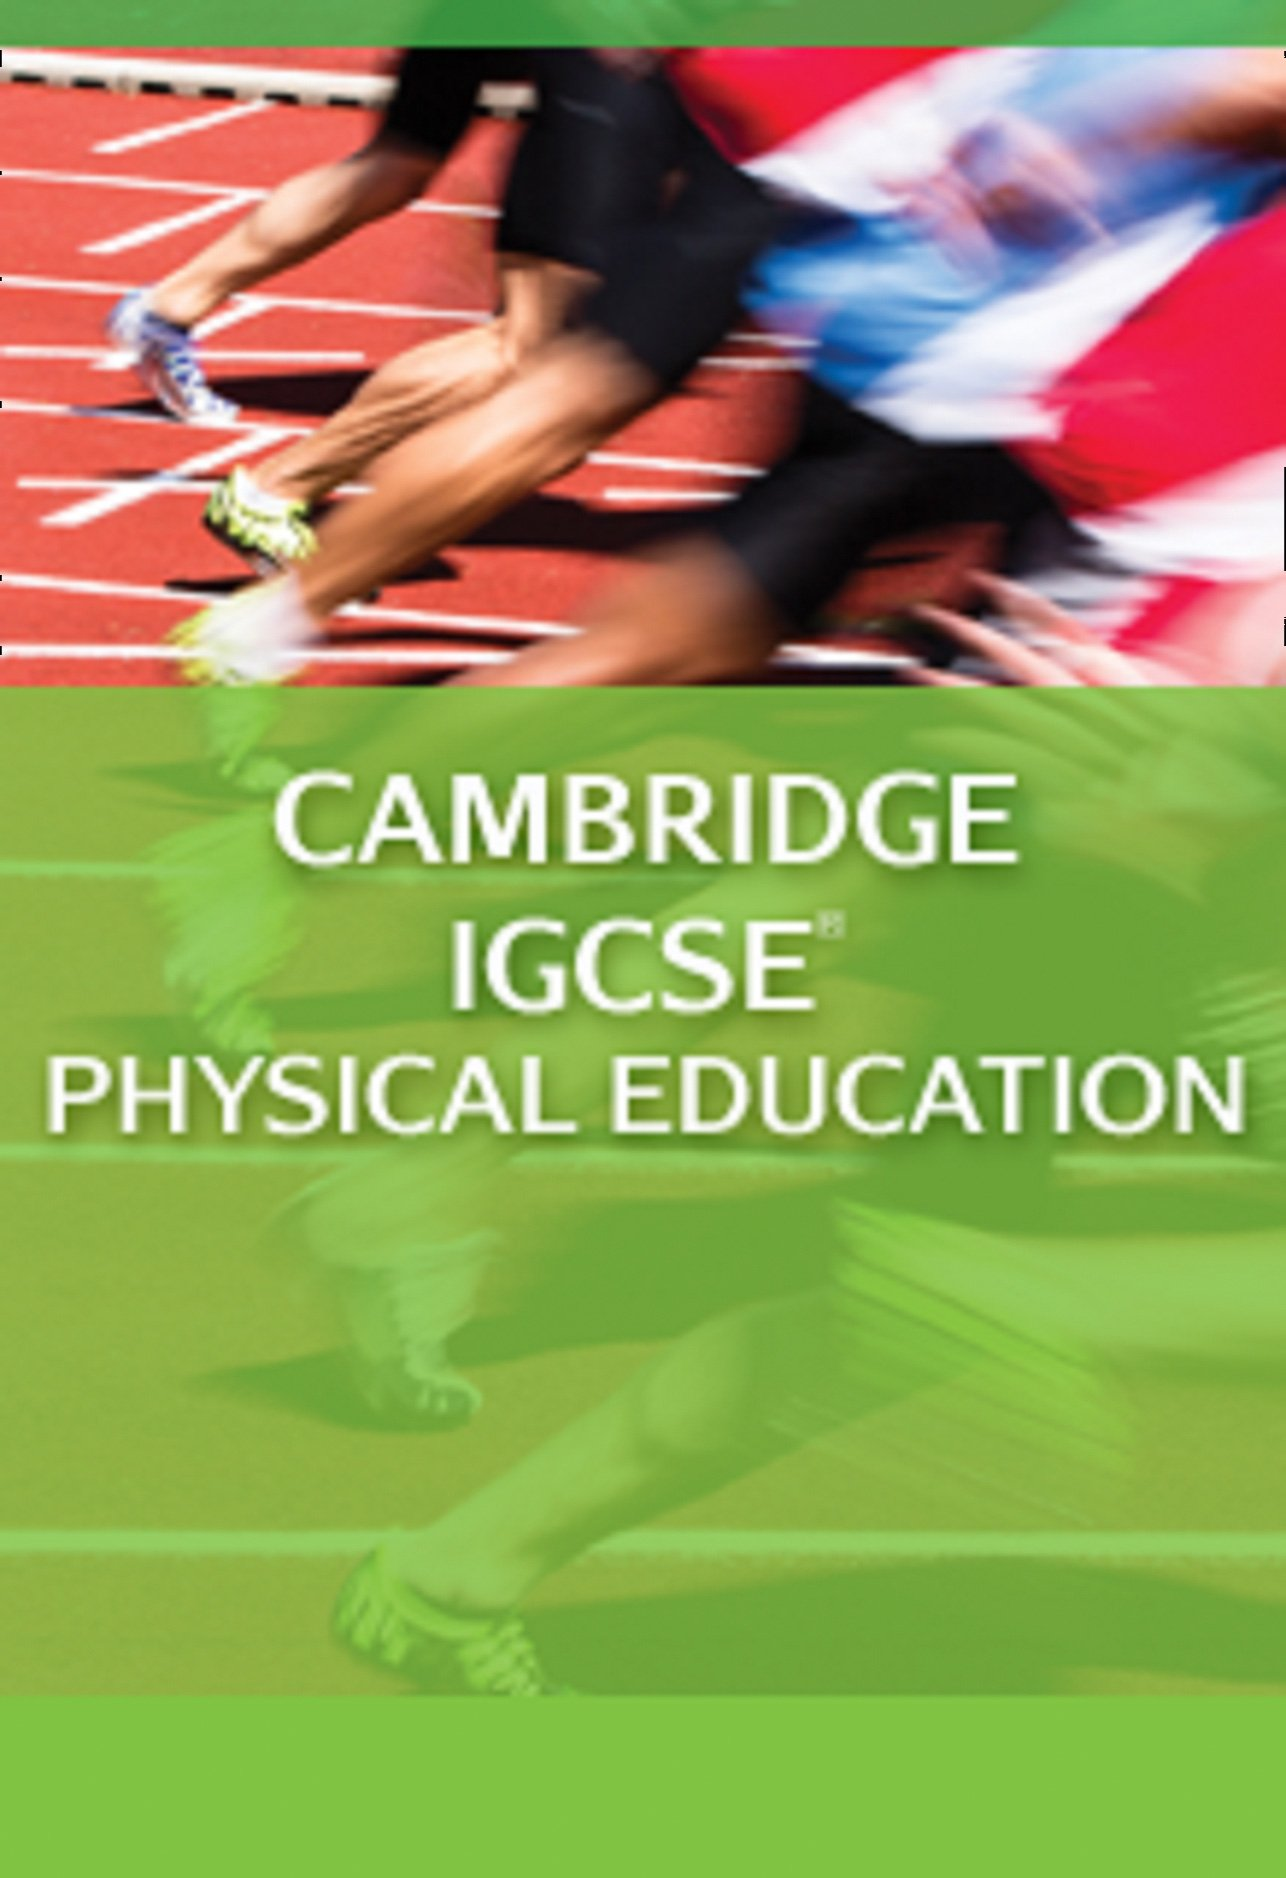 Cambridge IGCSE Physical Education course: Powered by Collins Connect, 1 Year Licence